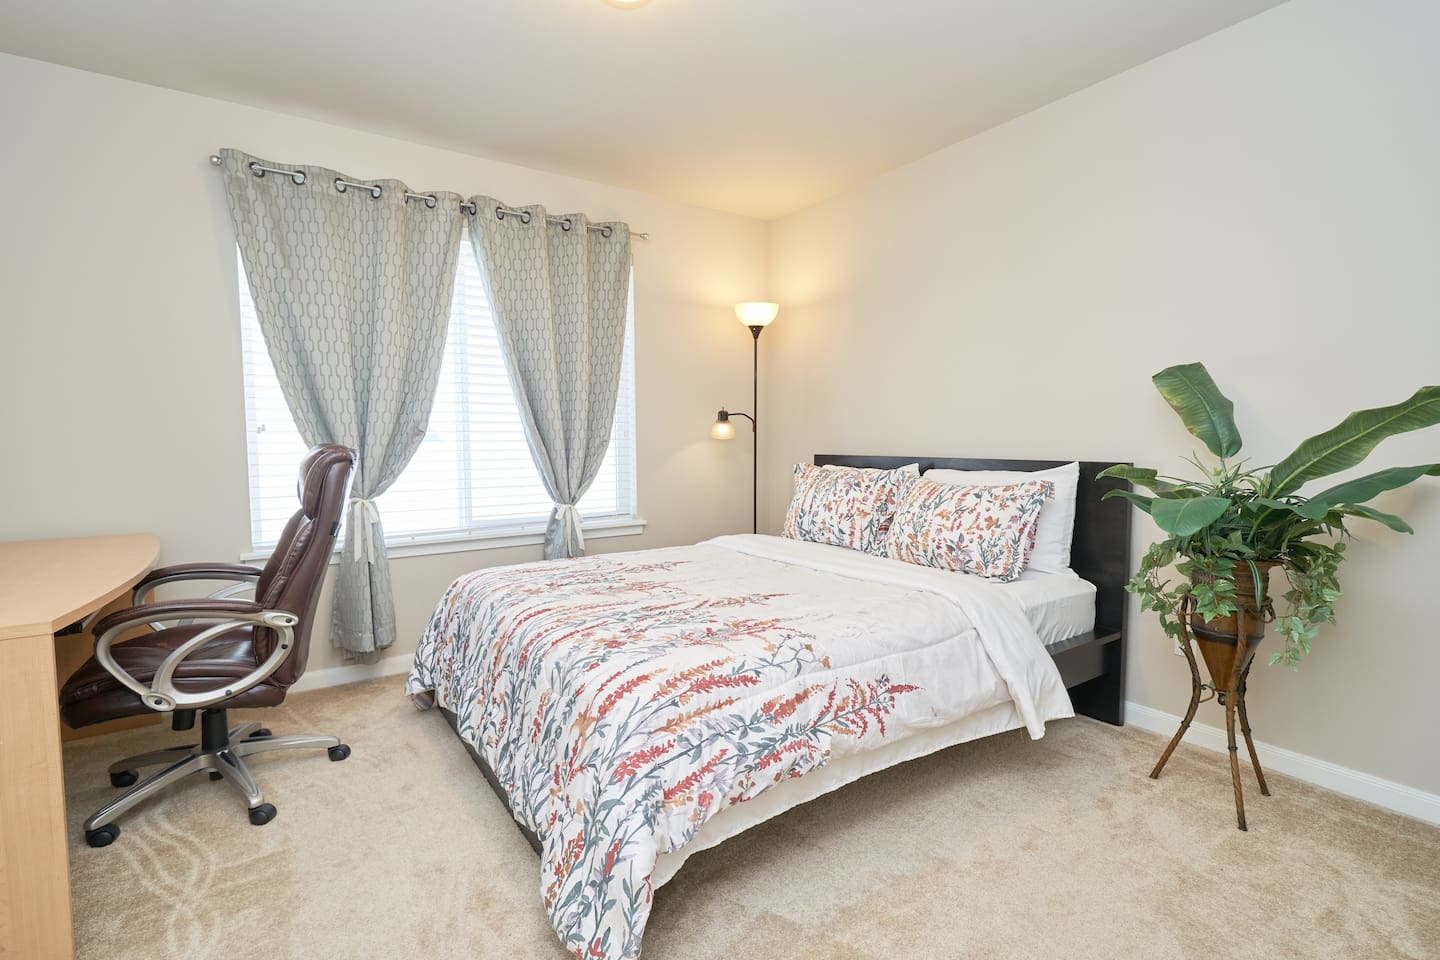 Spacious room with queen bed and a workstation